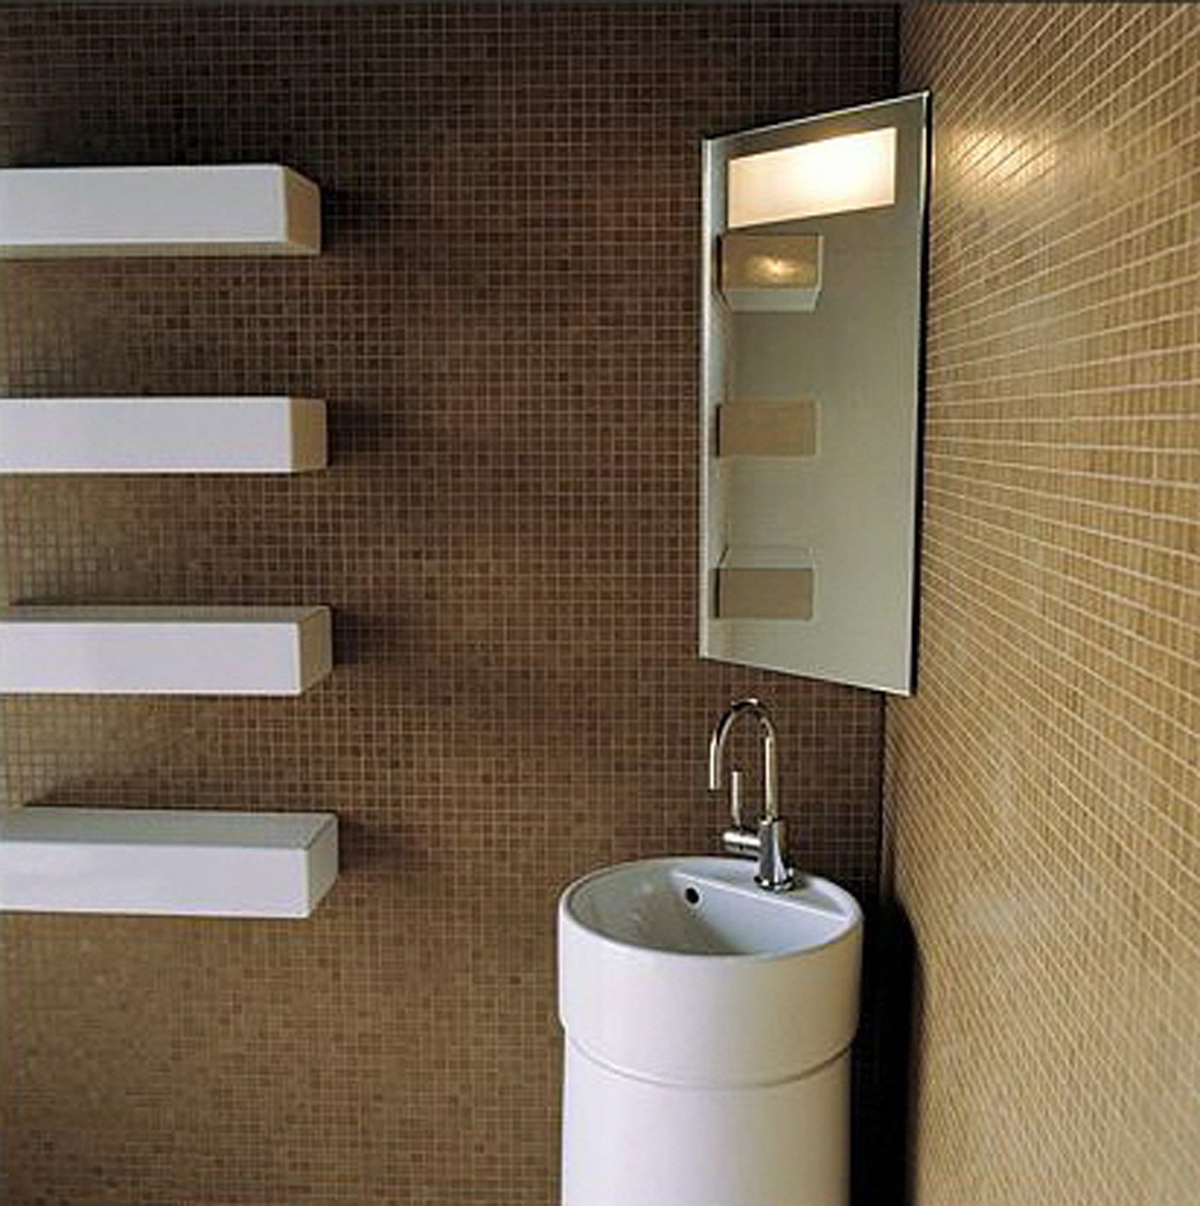 fancy-ultramodern-bathroom-storage-idea